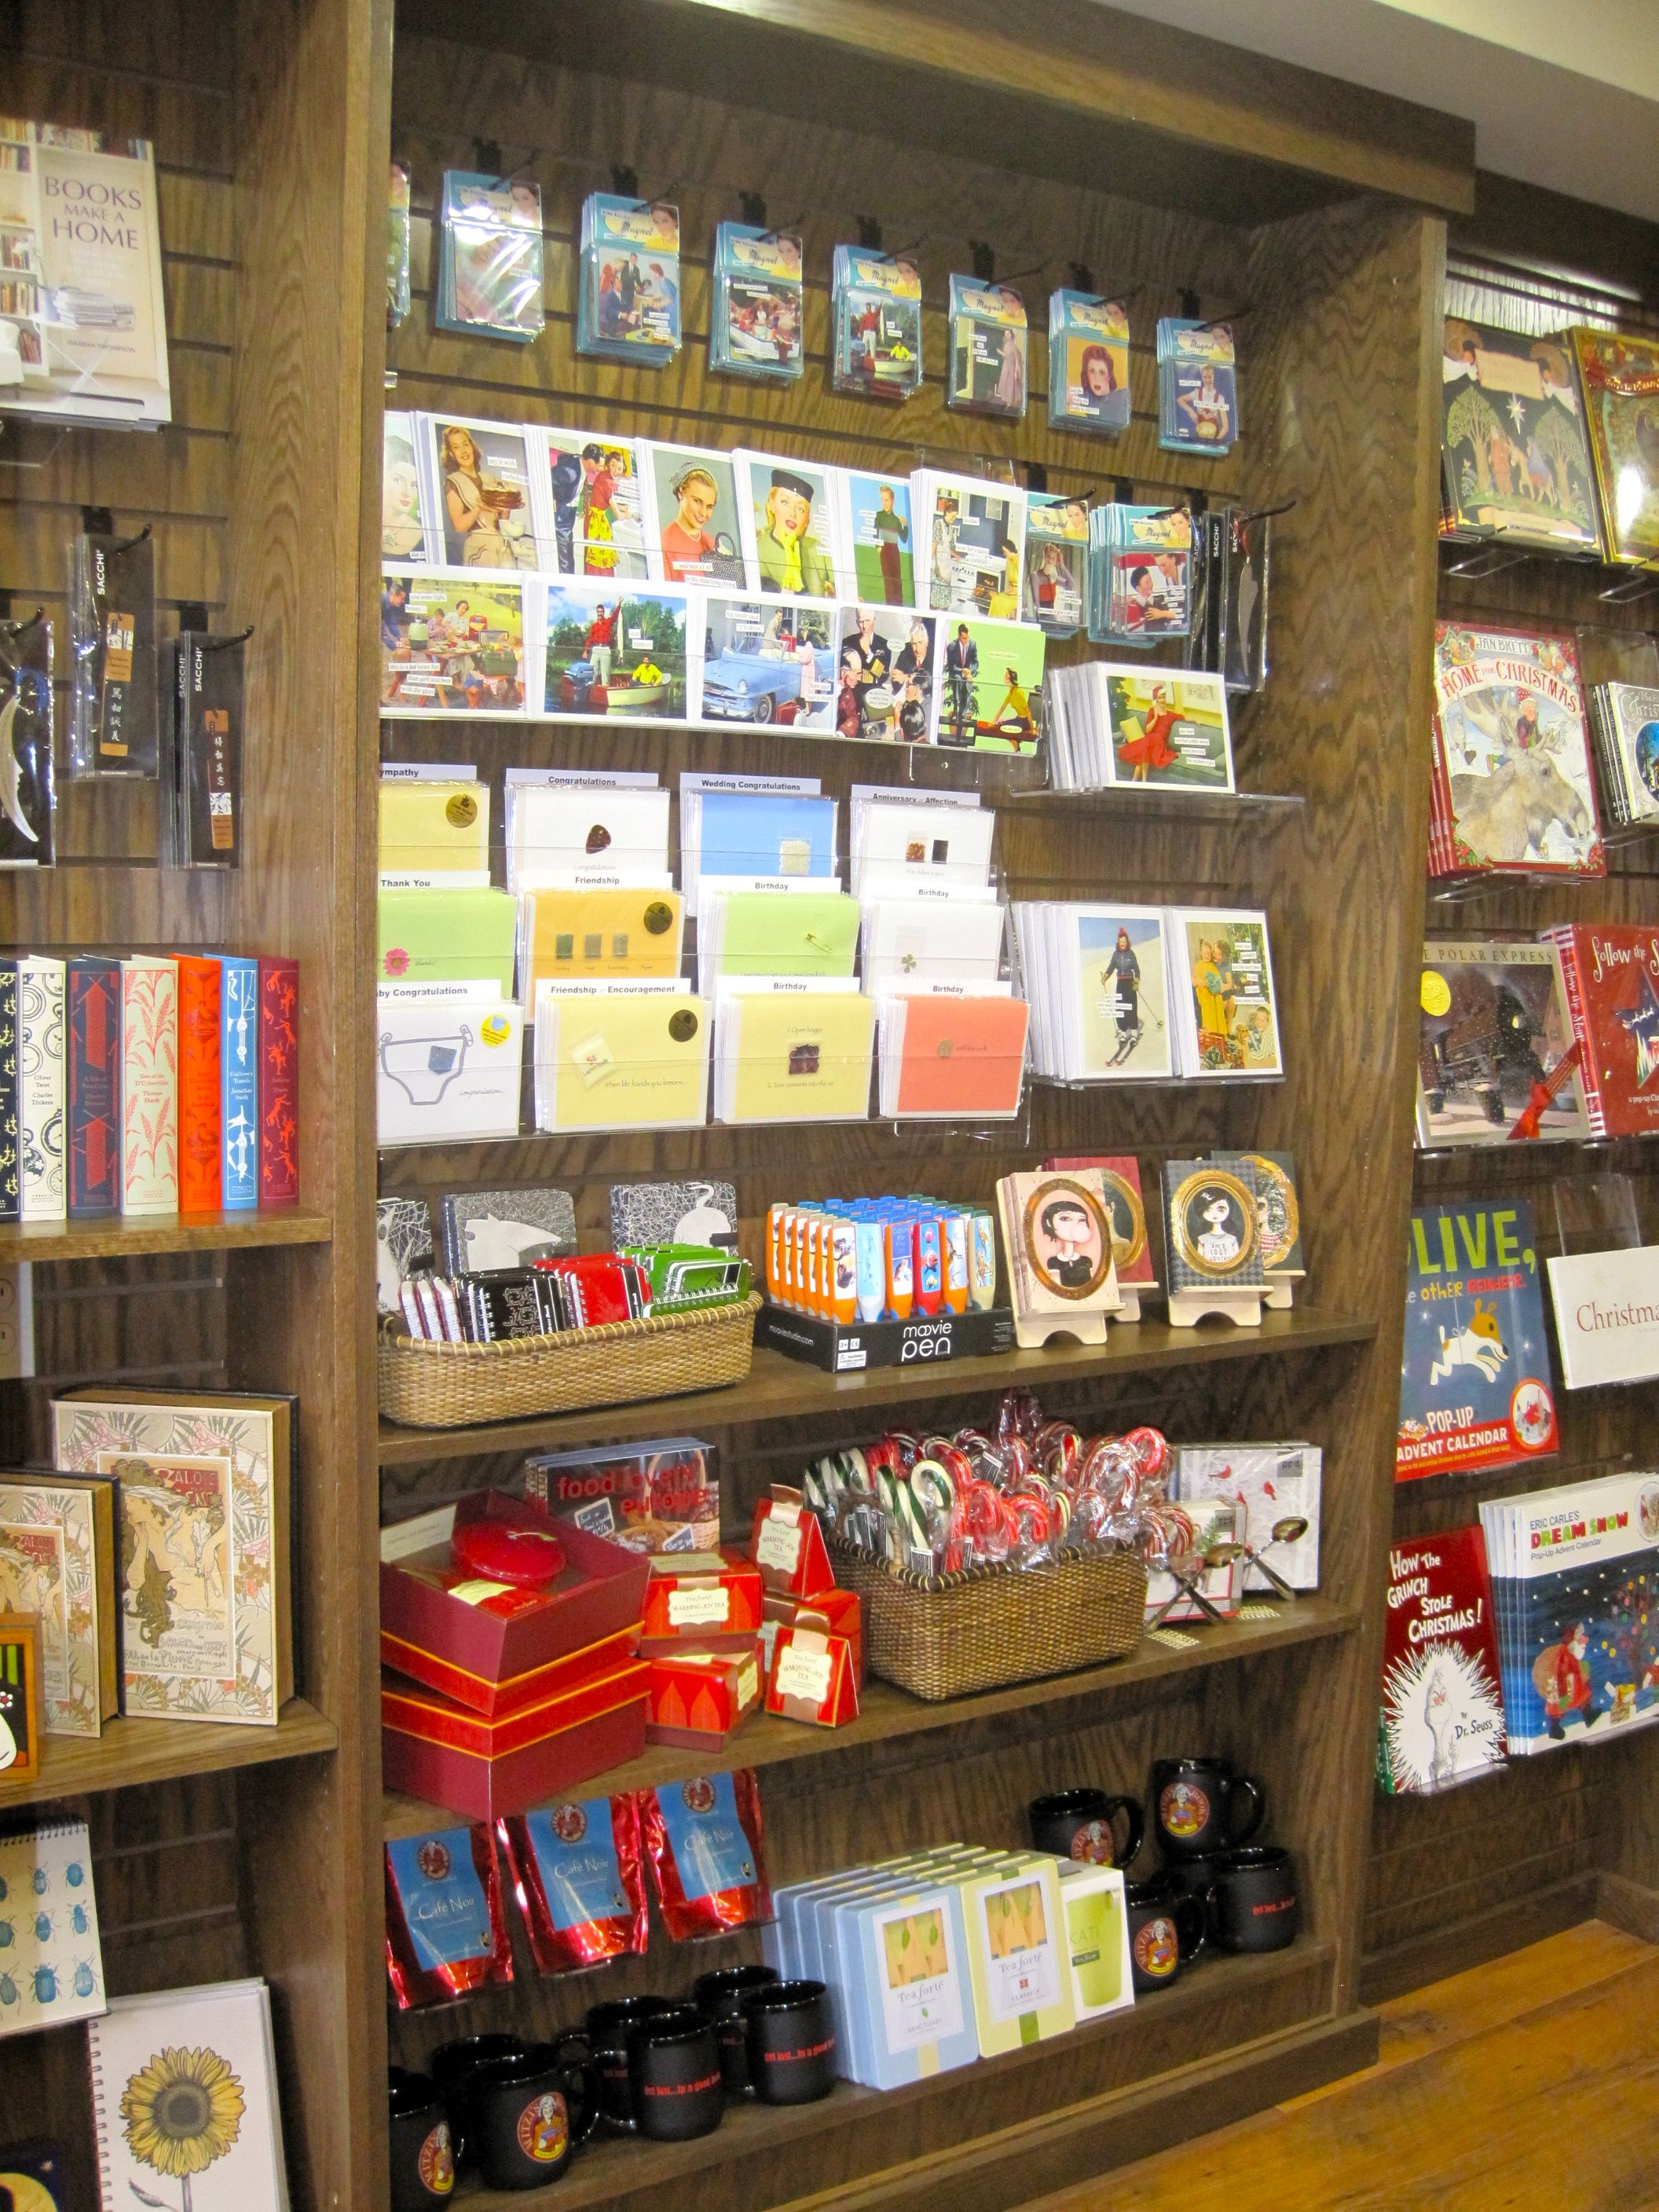 Using Card Strips Above We Mixed Merchandise Here In This Case By